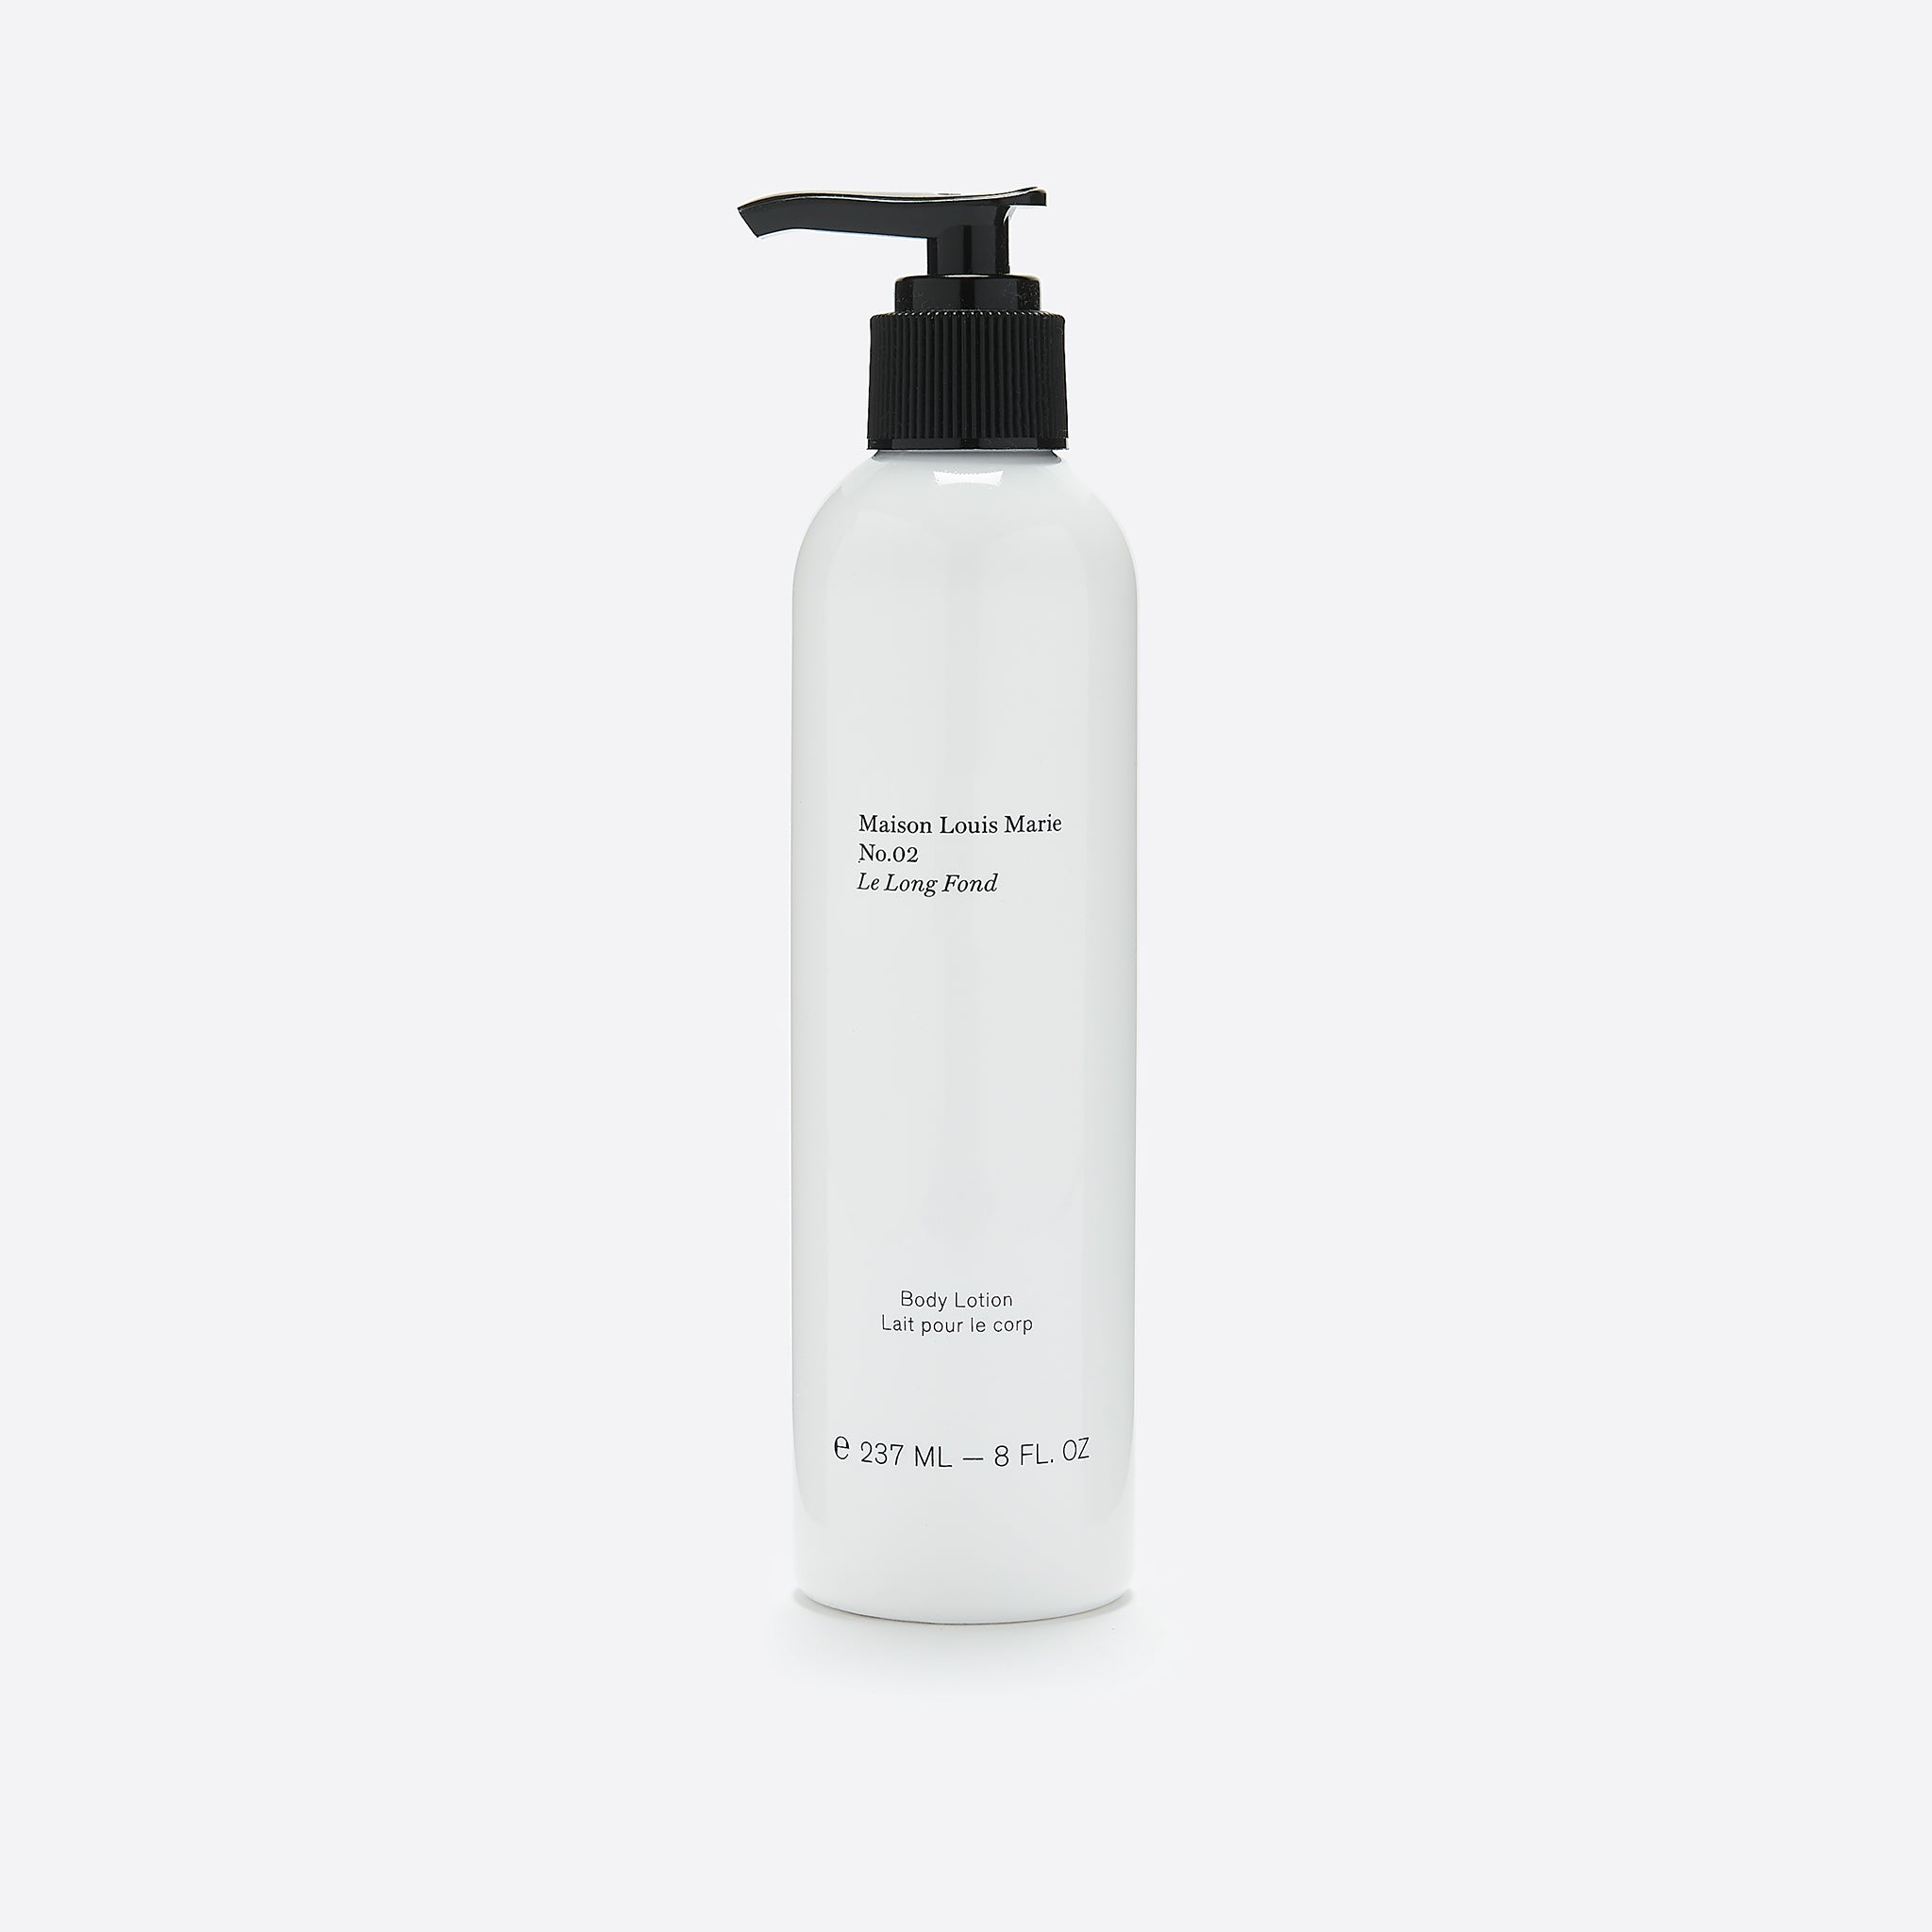 Maison Louis Marie Body Lotion in No.2 Le Long Fond